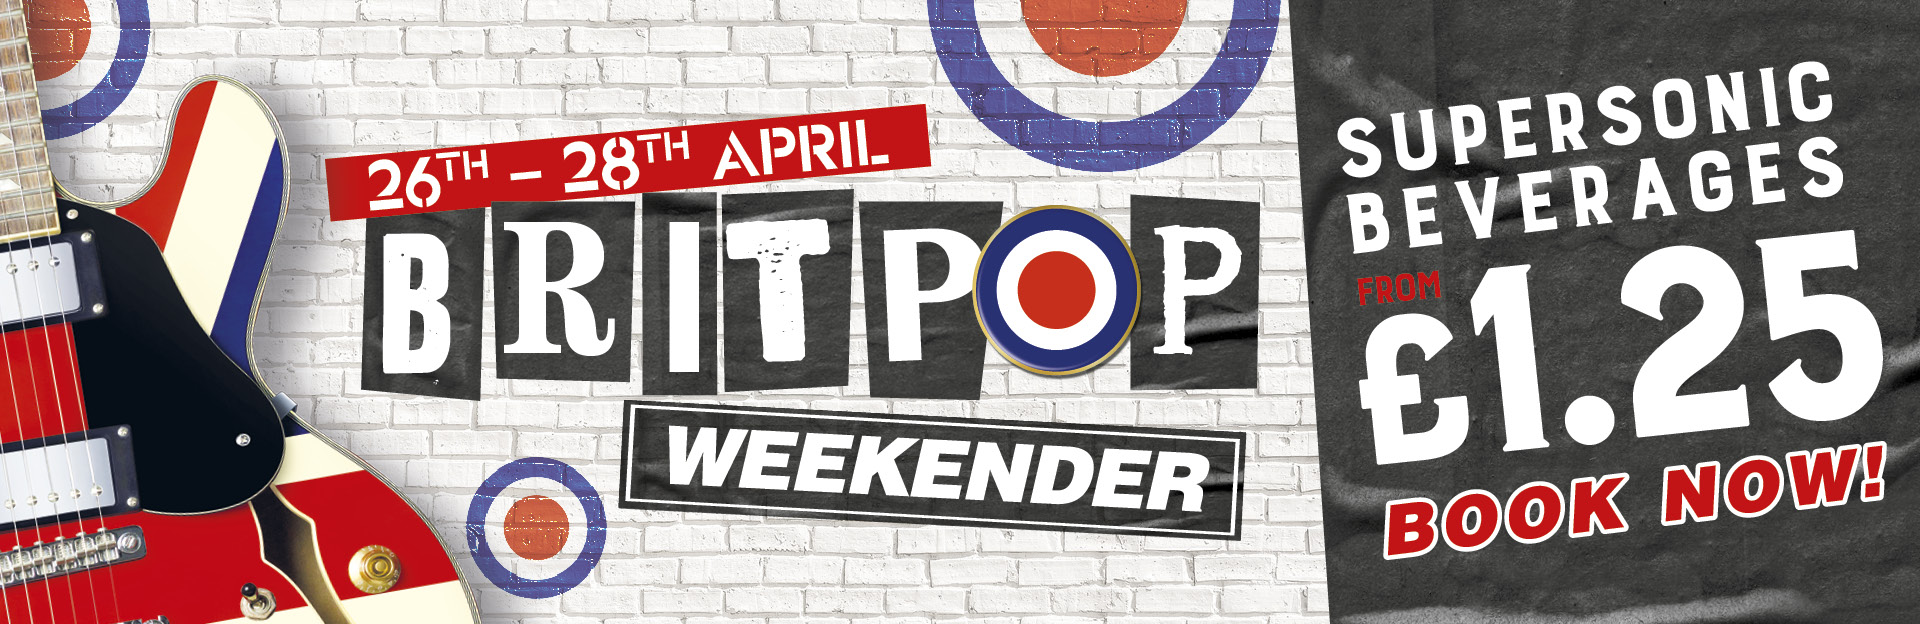 Britpop Weekender at The Friary